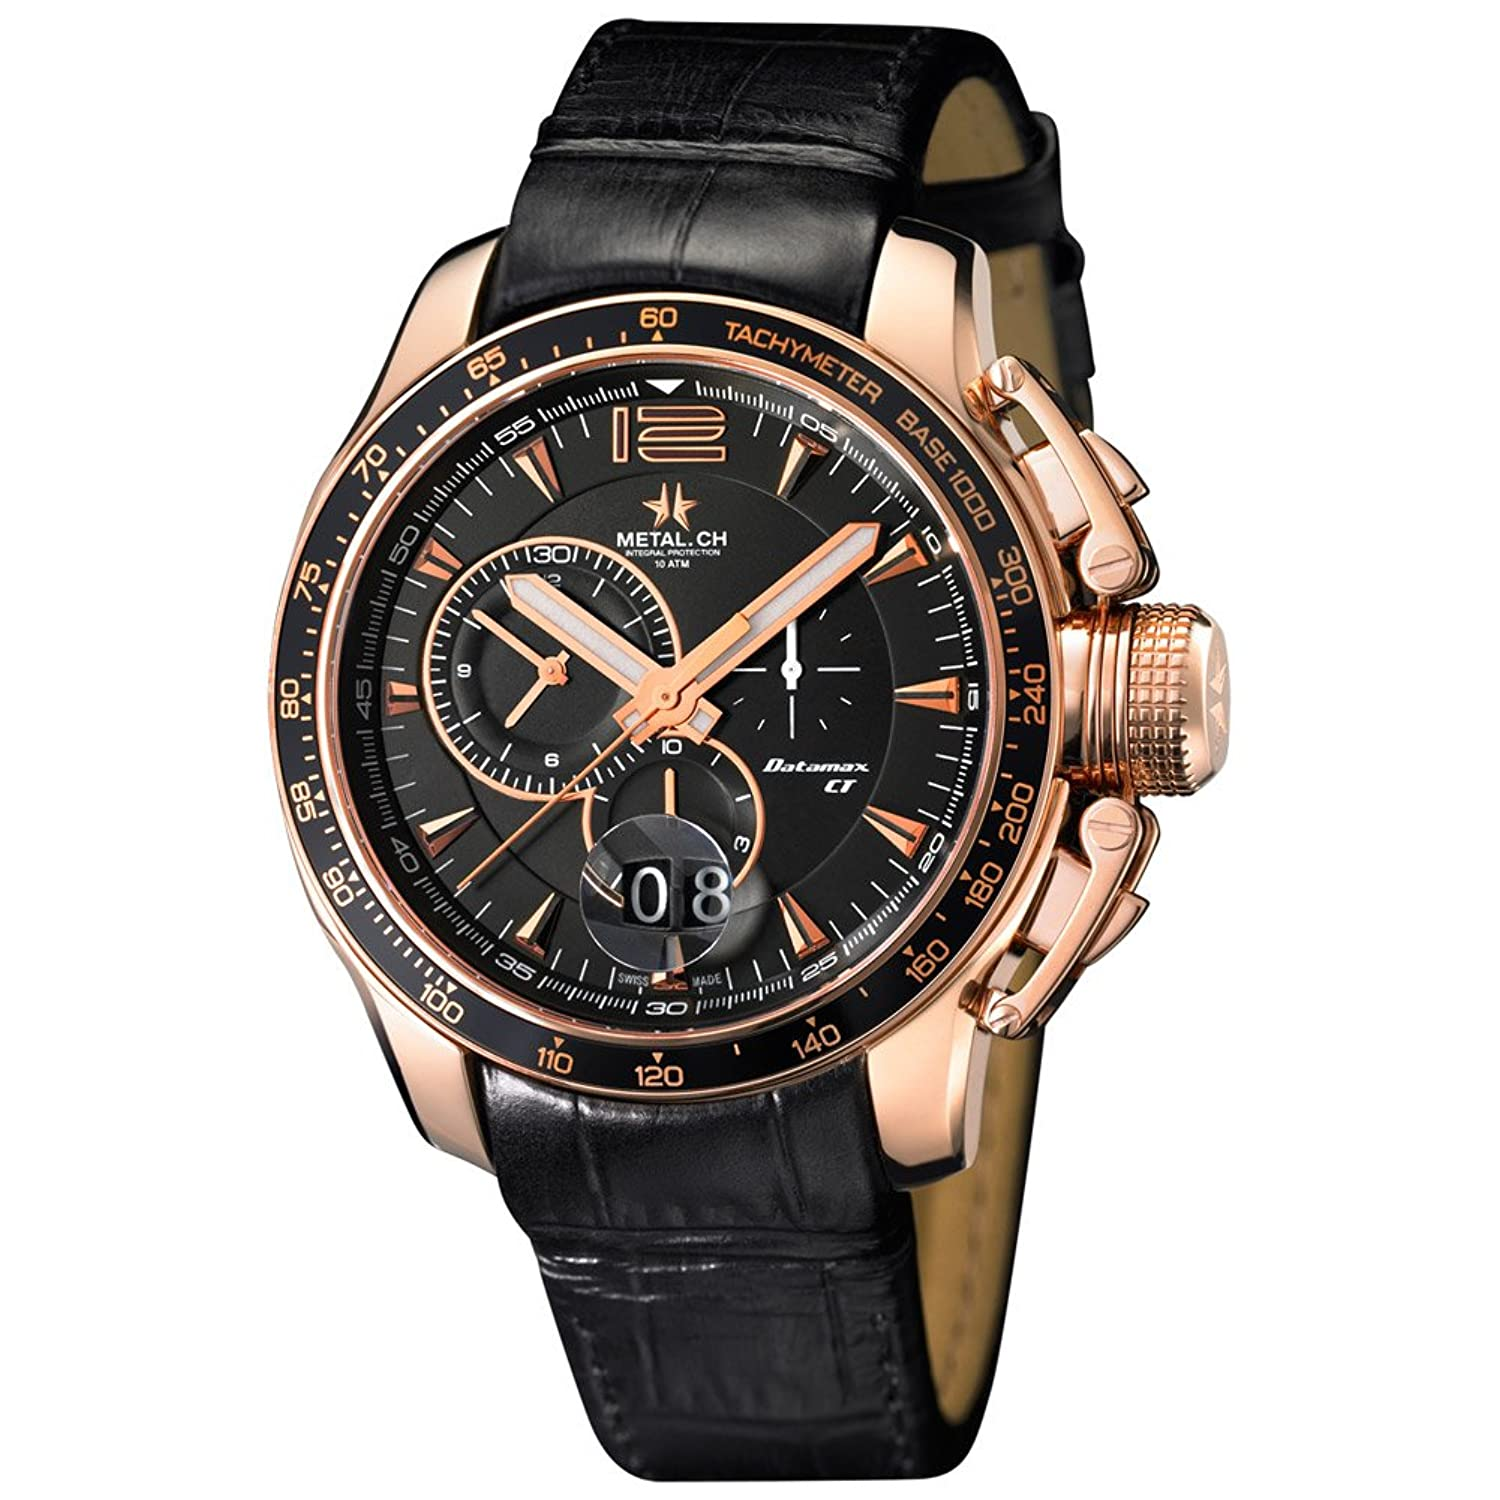 METAL Chronometrie Swiss Made Uhr - DATAMAXX gold 44mm